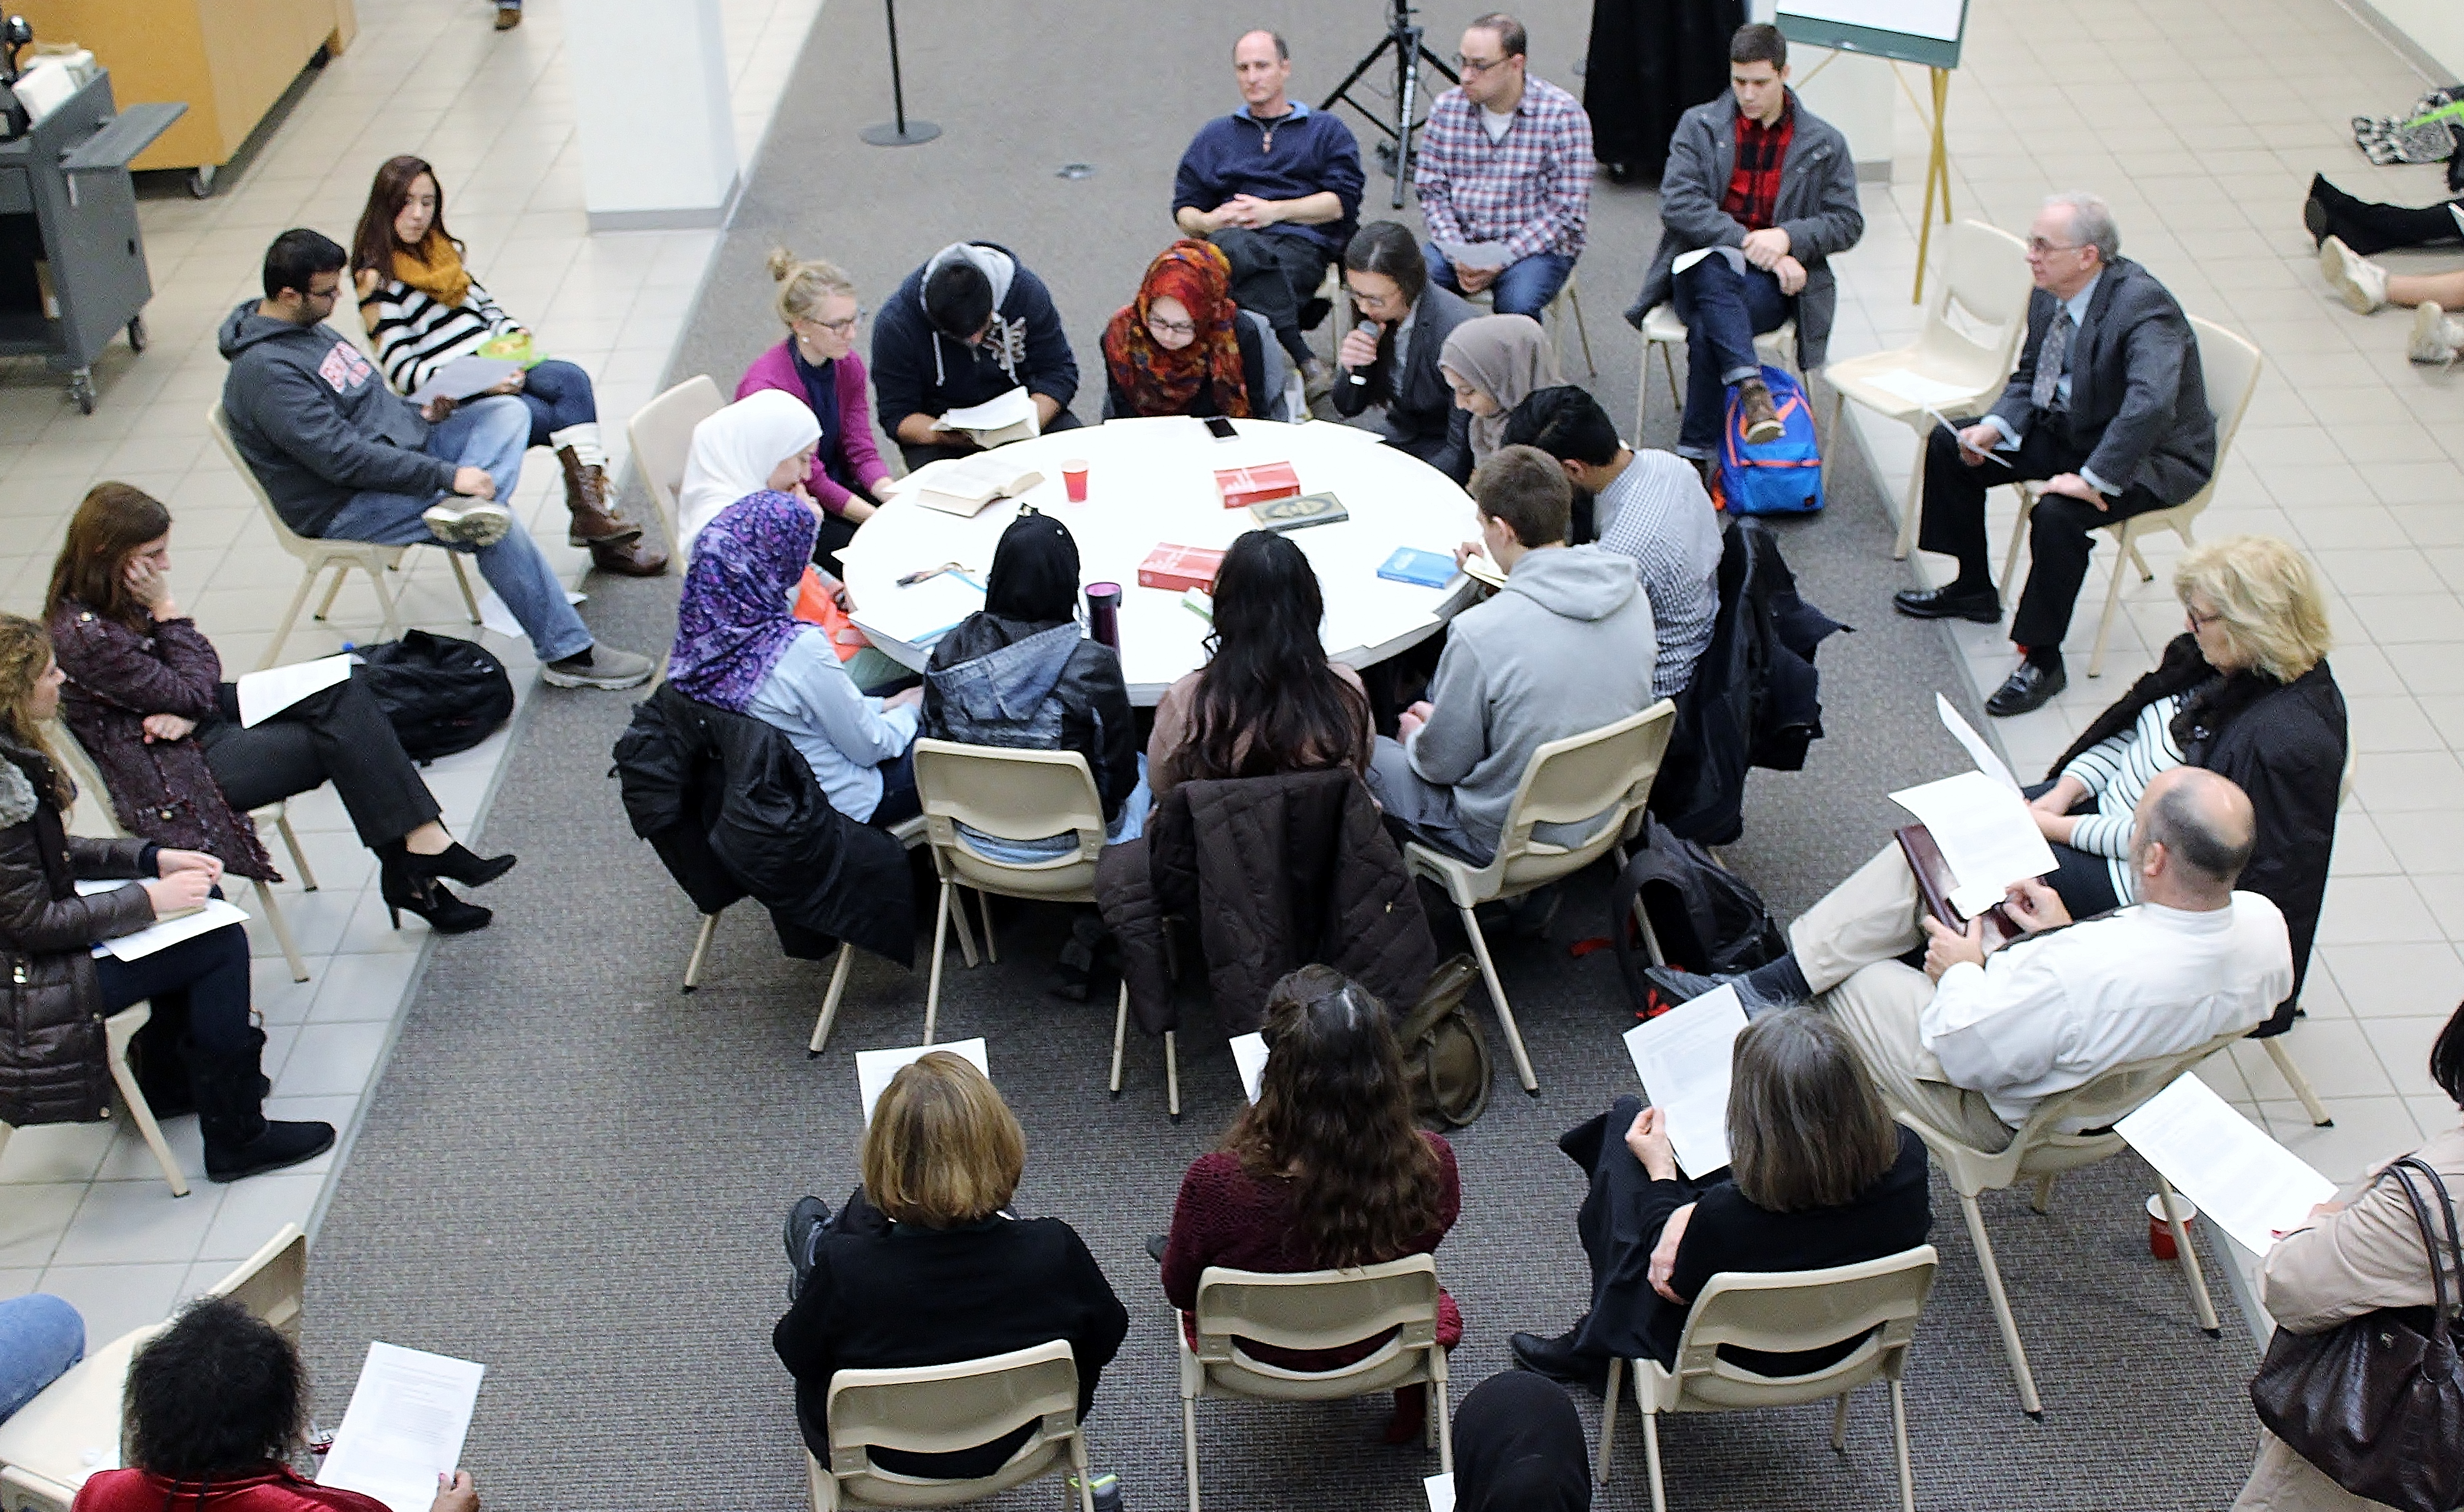 Catholic Muslim Dialogue hosted a Fishbowl conversation for the campus community